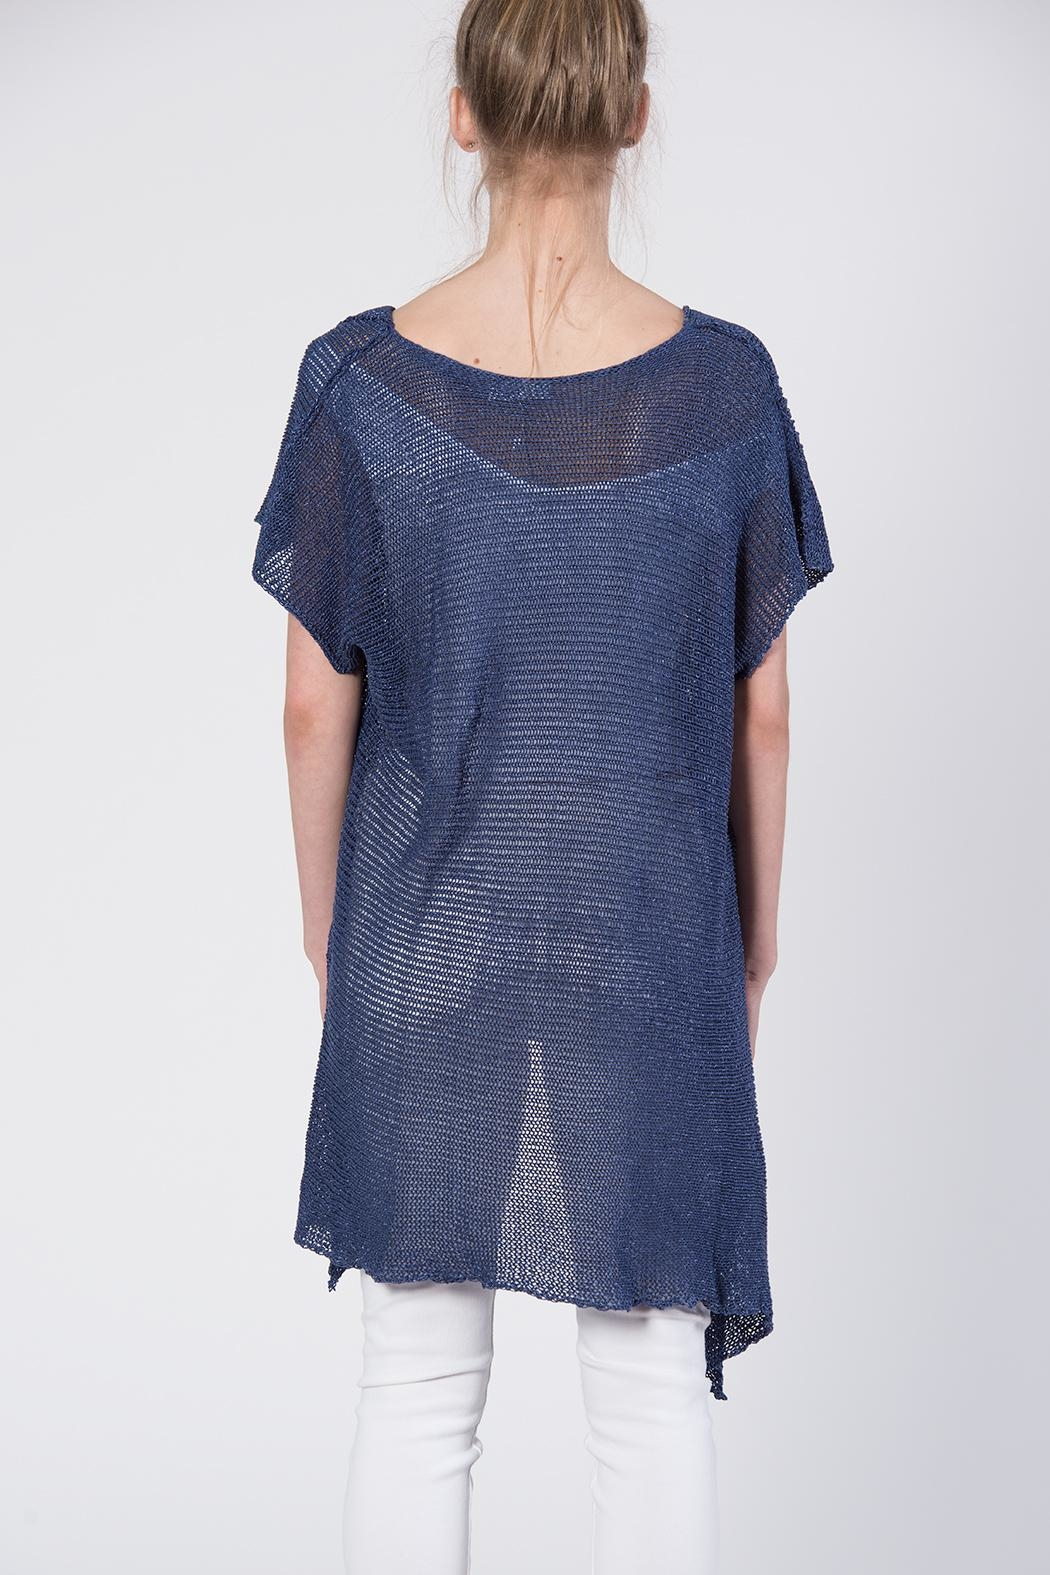 BK Moda Bow Sweater Top - Side Cropped Image